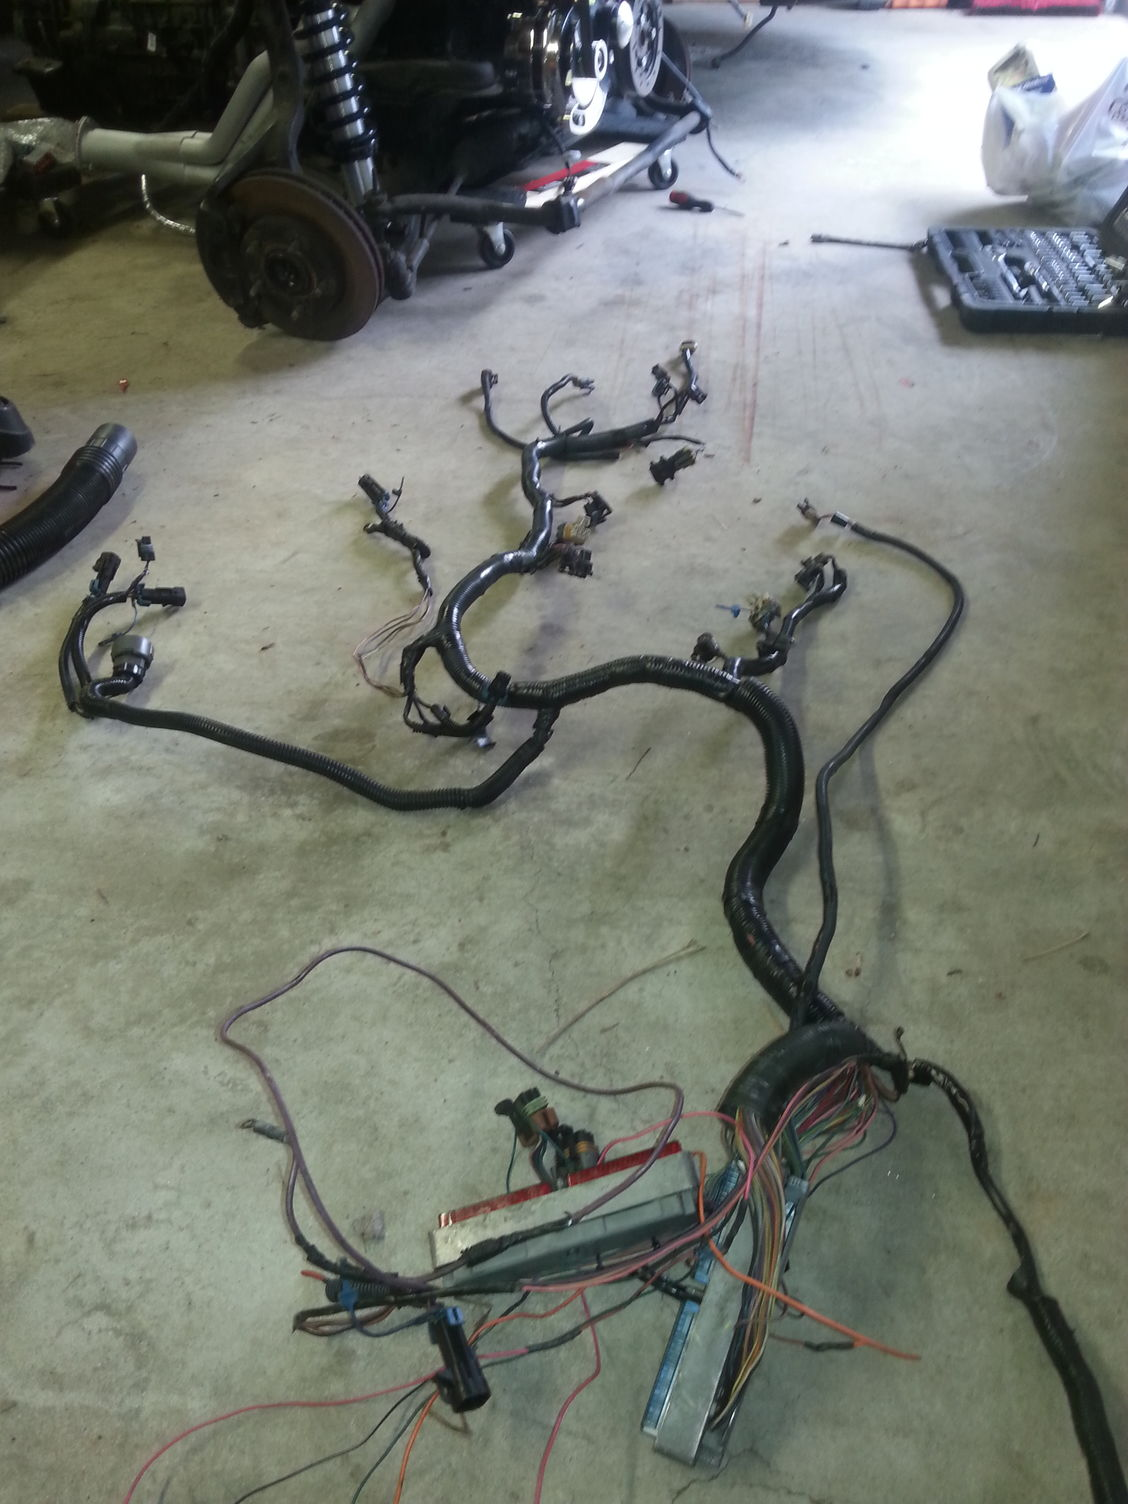 24x lt1 wiring harness harness for lt1 24x - ls1tech - camaro and firebird forum ...